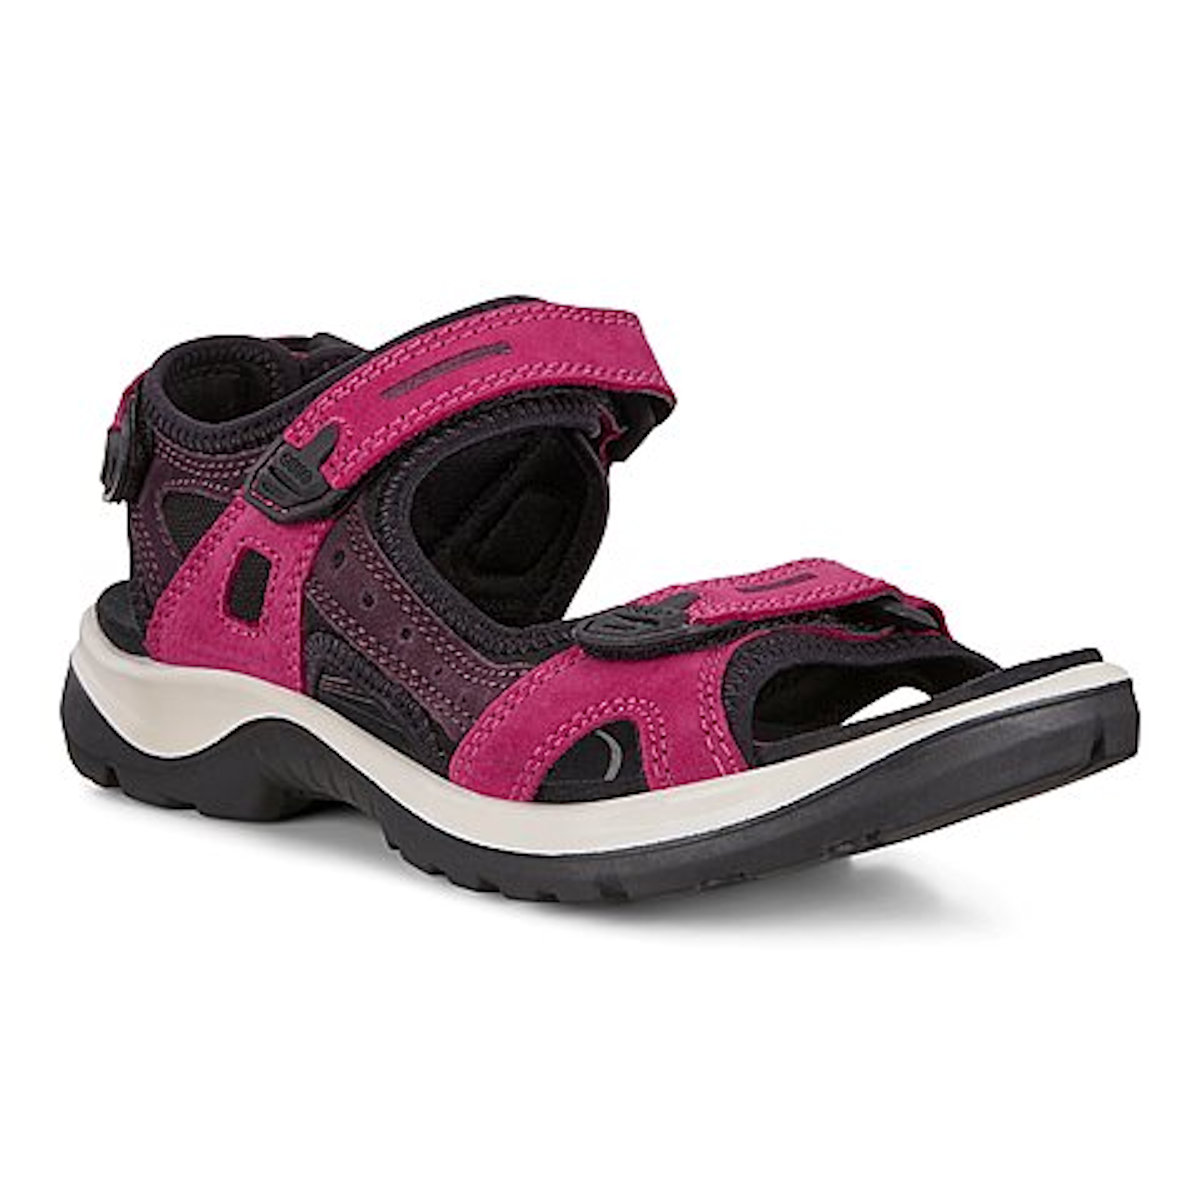 ECCO Offroad Pink Sandals for women